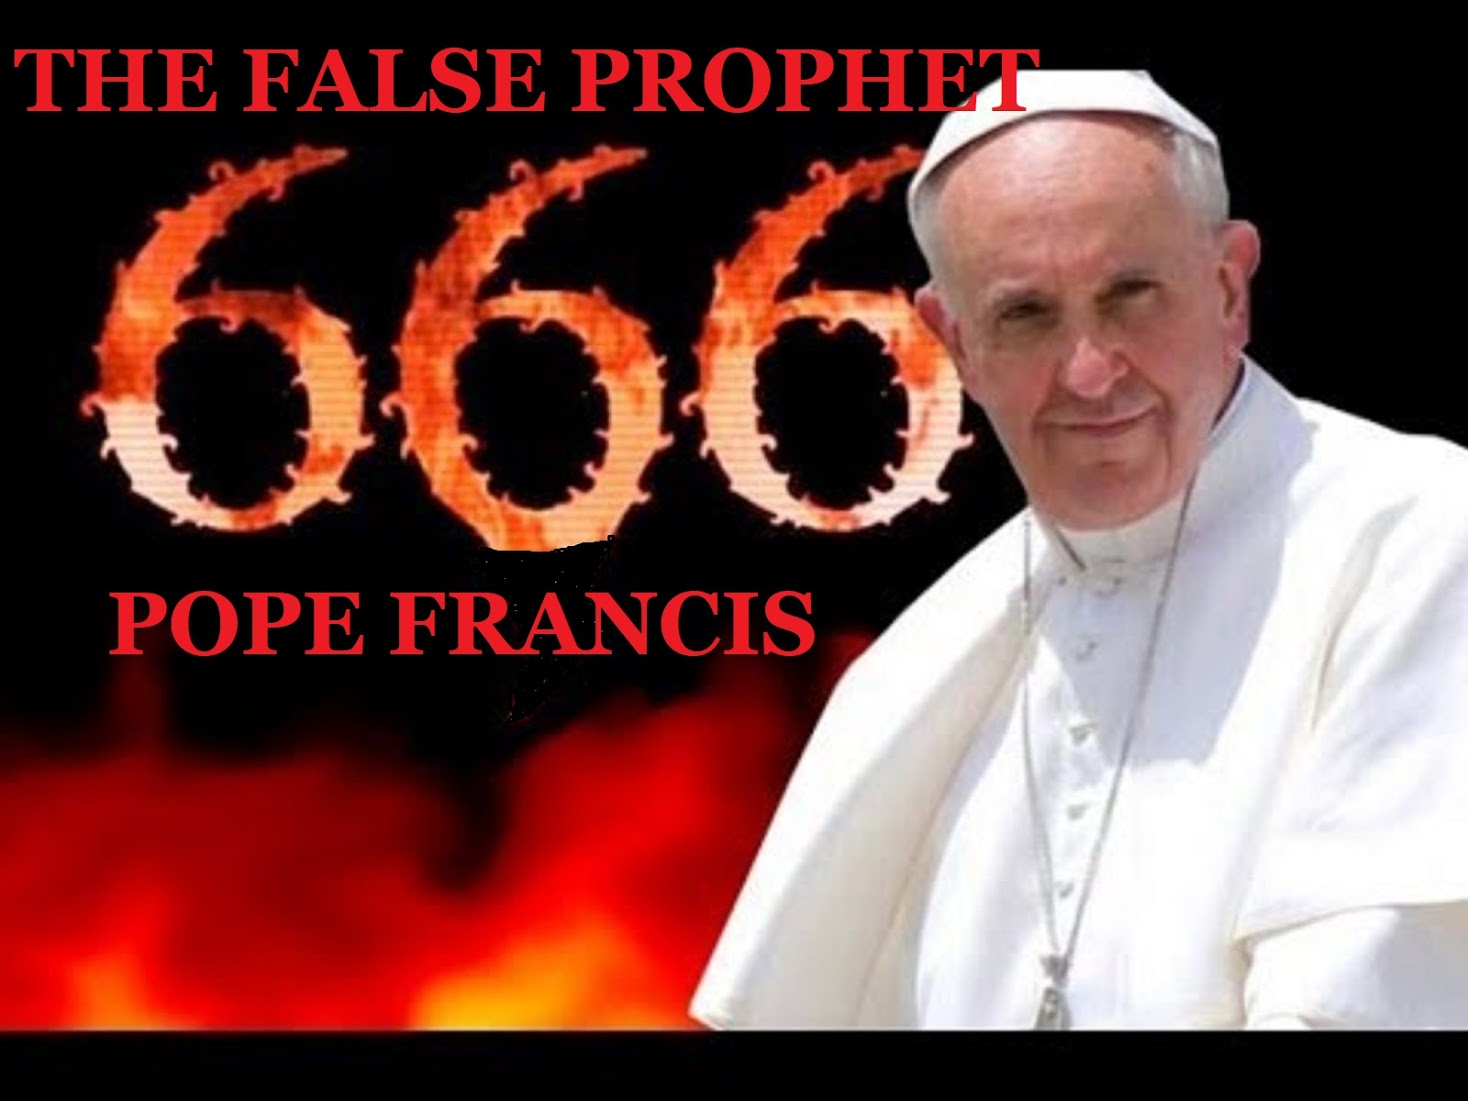 POPE FRANCIS - THE FALSE PROPHET